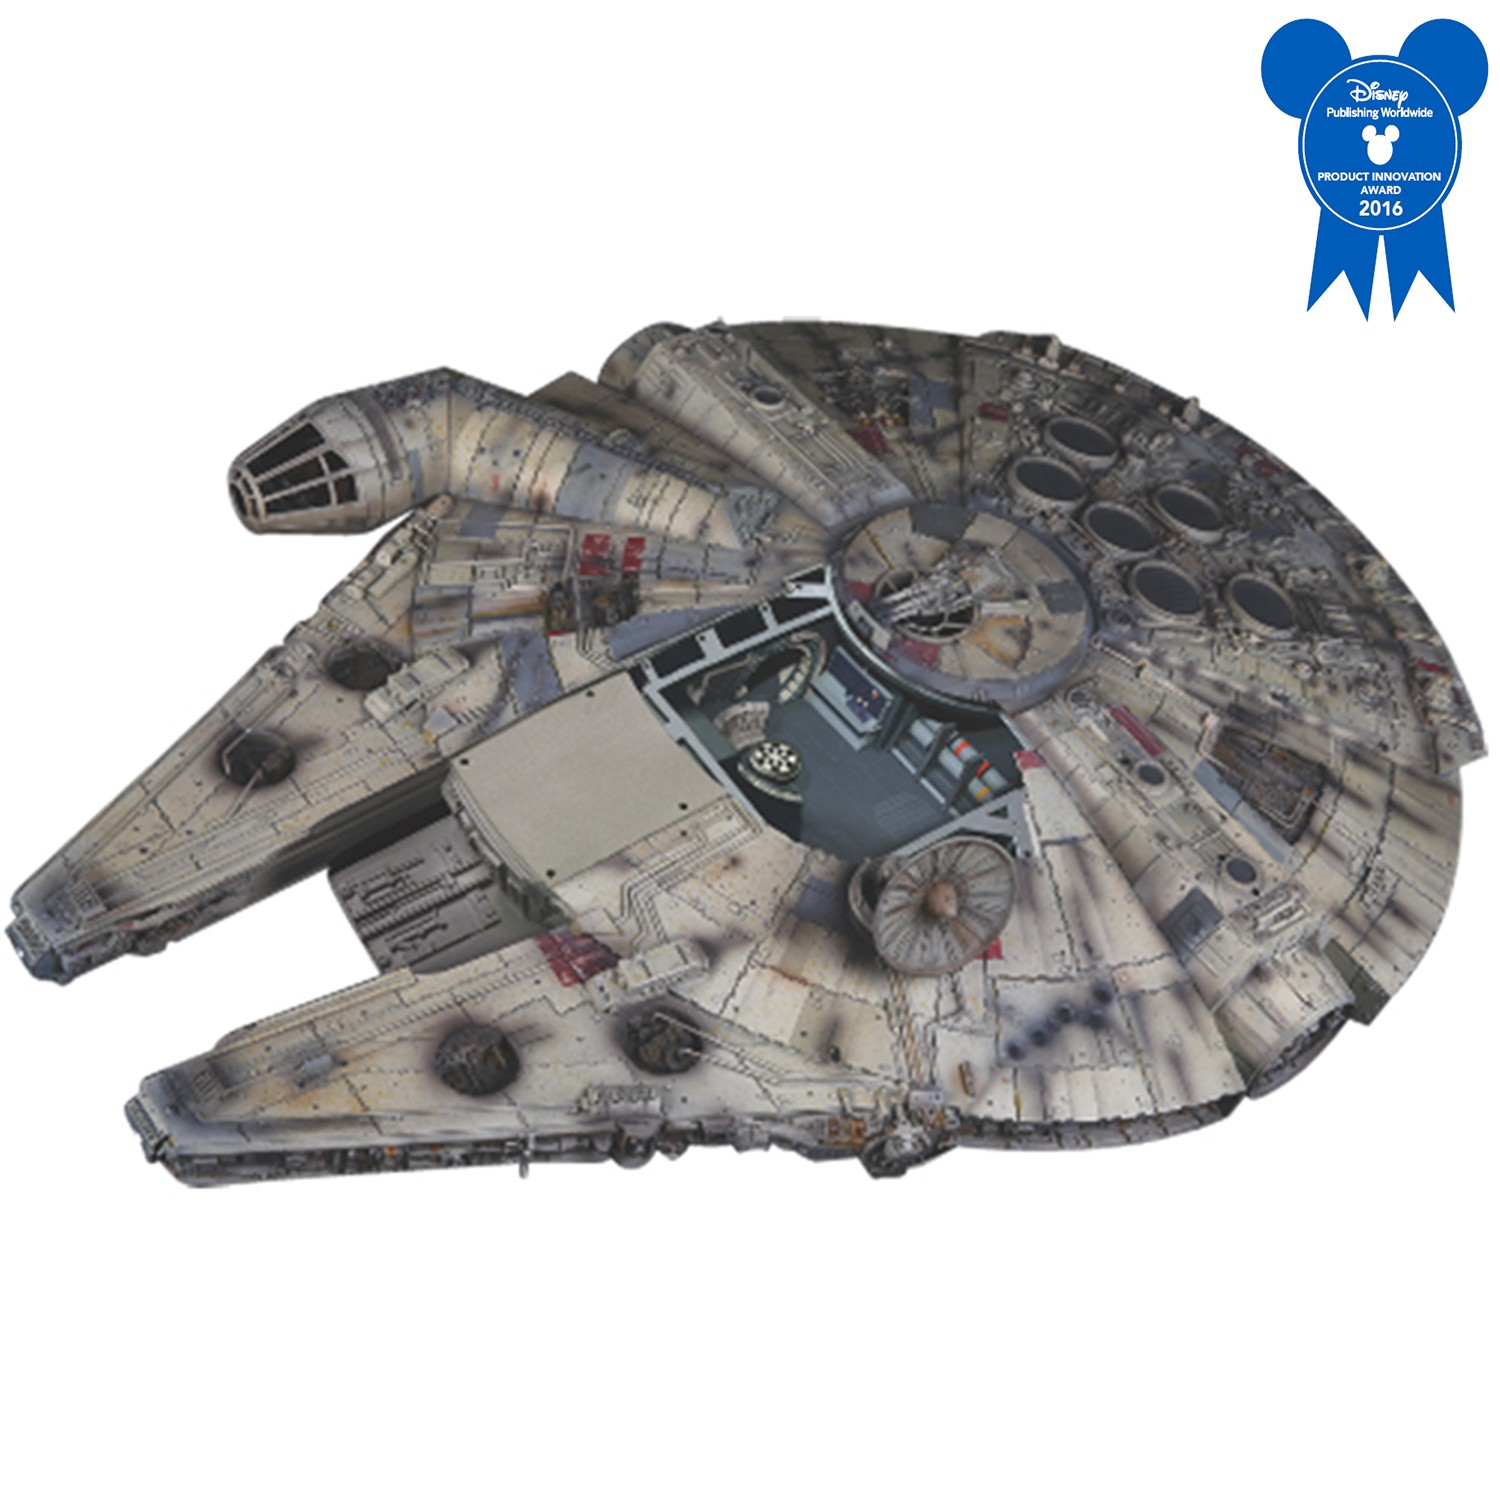 rc military planes with Build The Millennium Falcon on Build The Rms Titanic Lifeboat besides Jet further Build The Thunderbird 2 in addition Plane besides Build The R2 D2.